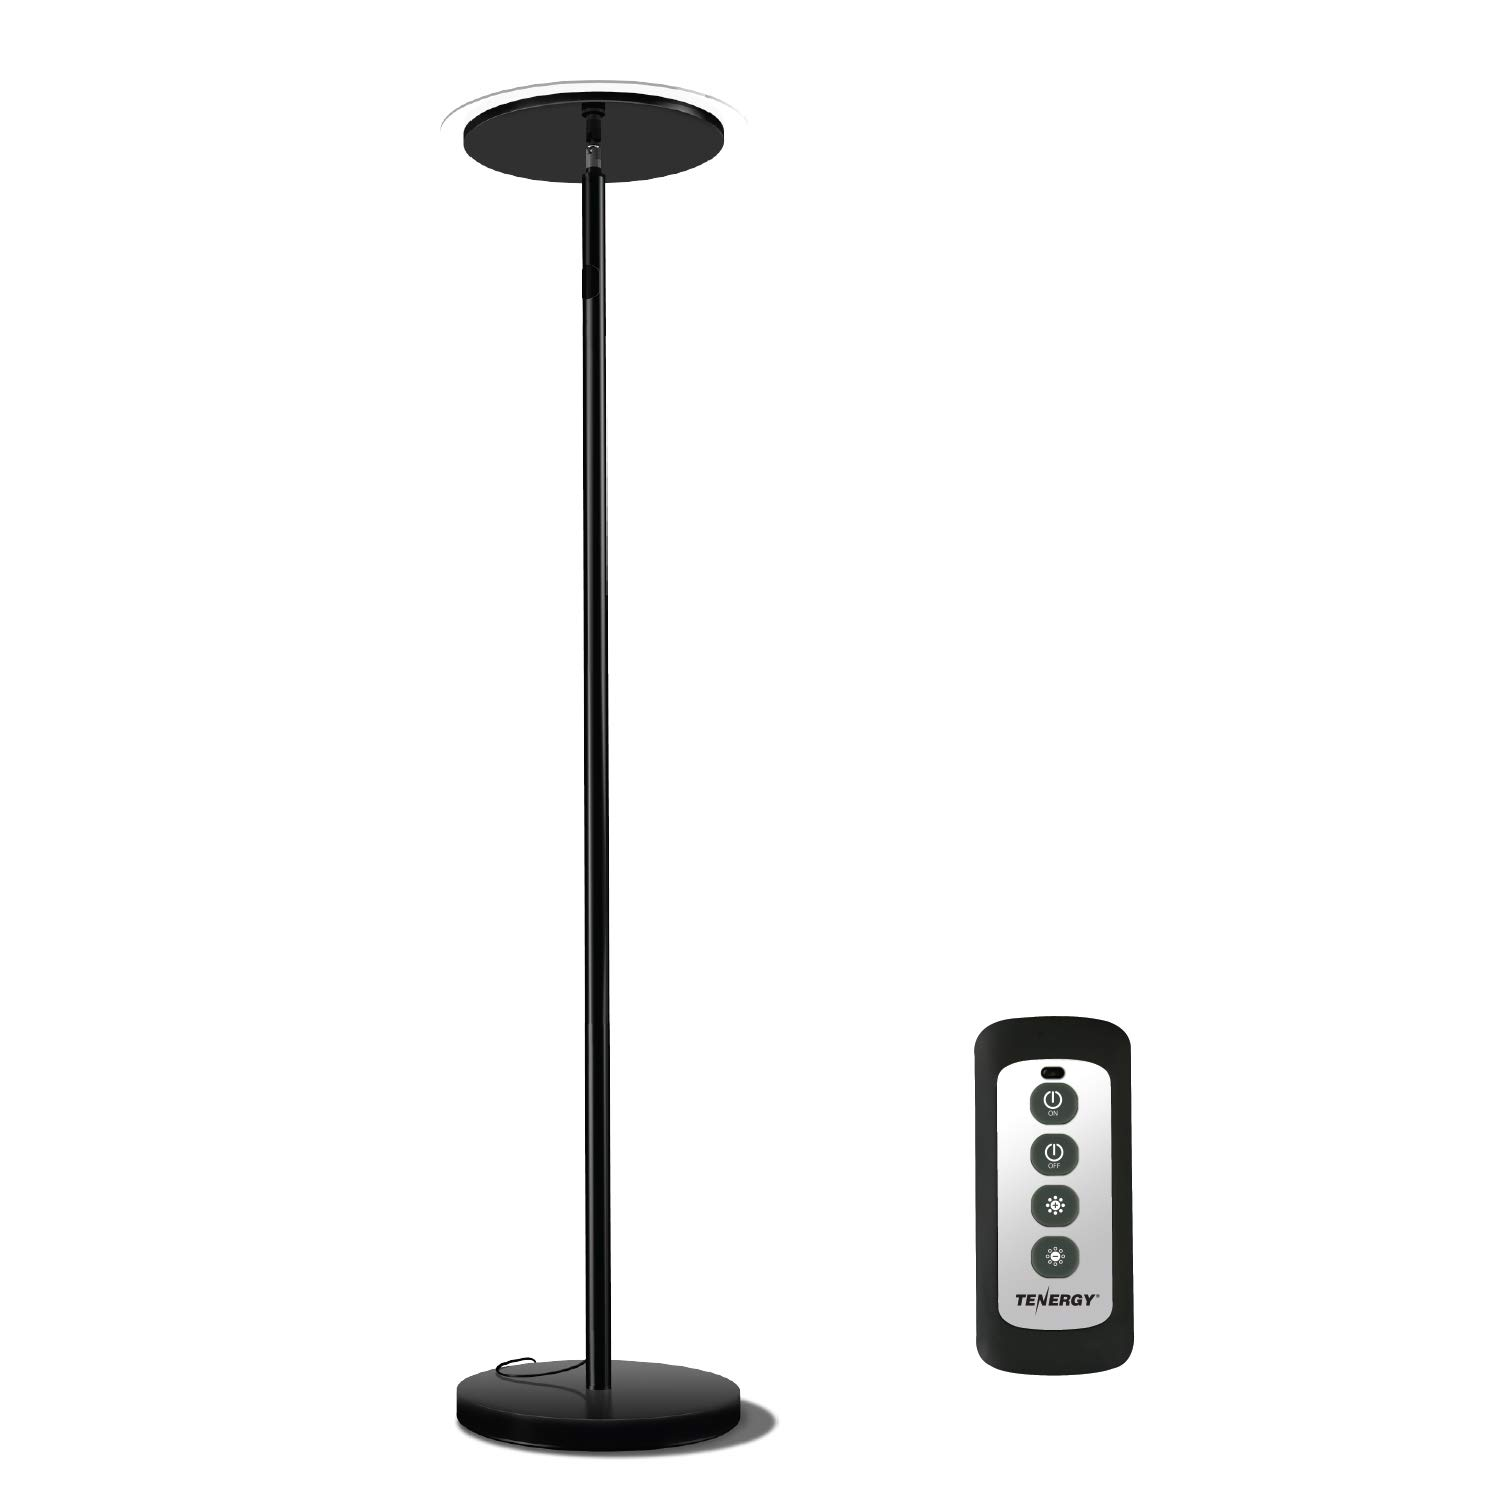 Tenergy Torchiere Dimmable LED Floor Lamp, Remote Controlled 30W 150W Equivalent Standing Lamp with Stepless Touch Dimmer, Two-Part Trip-Proof Cable, 90 Adjustable Top, Warm White Light